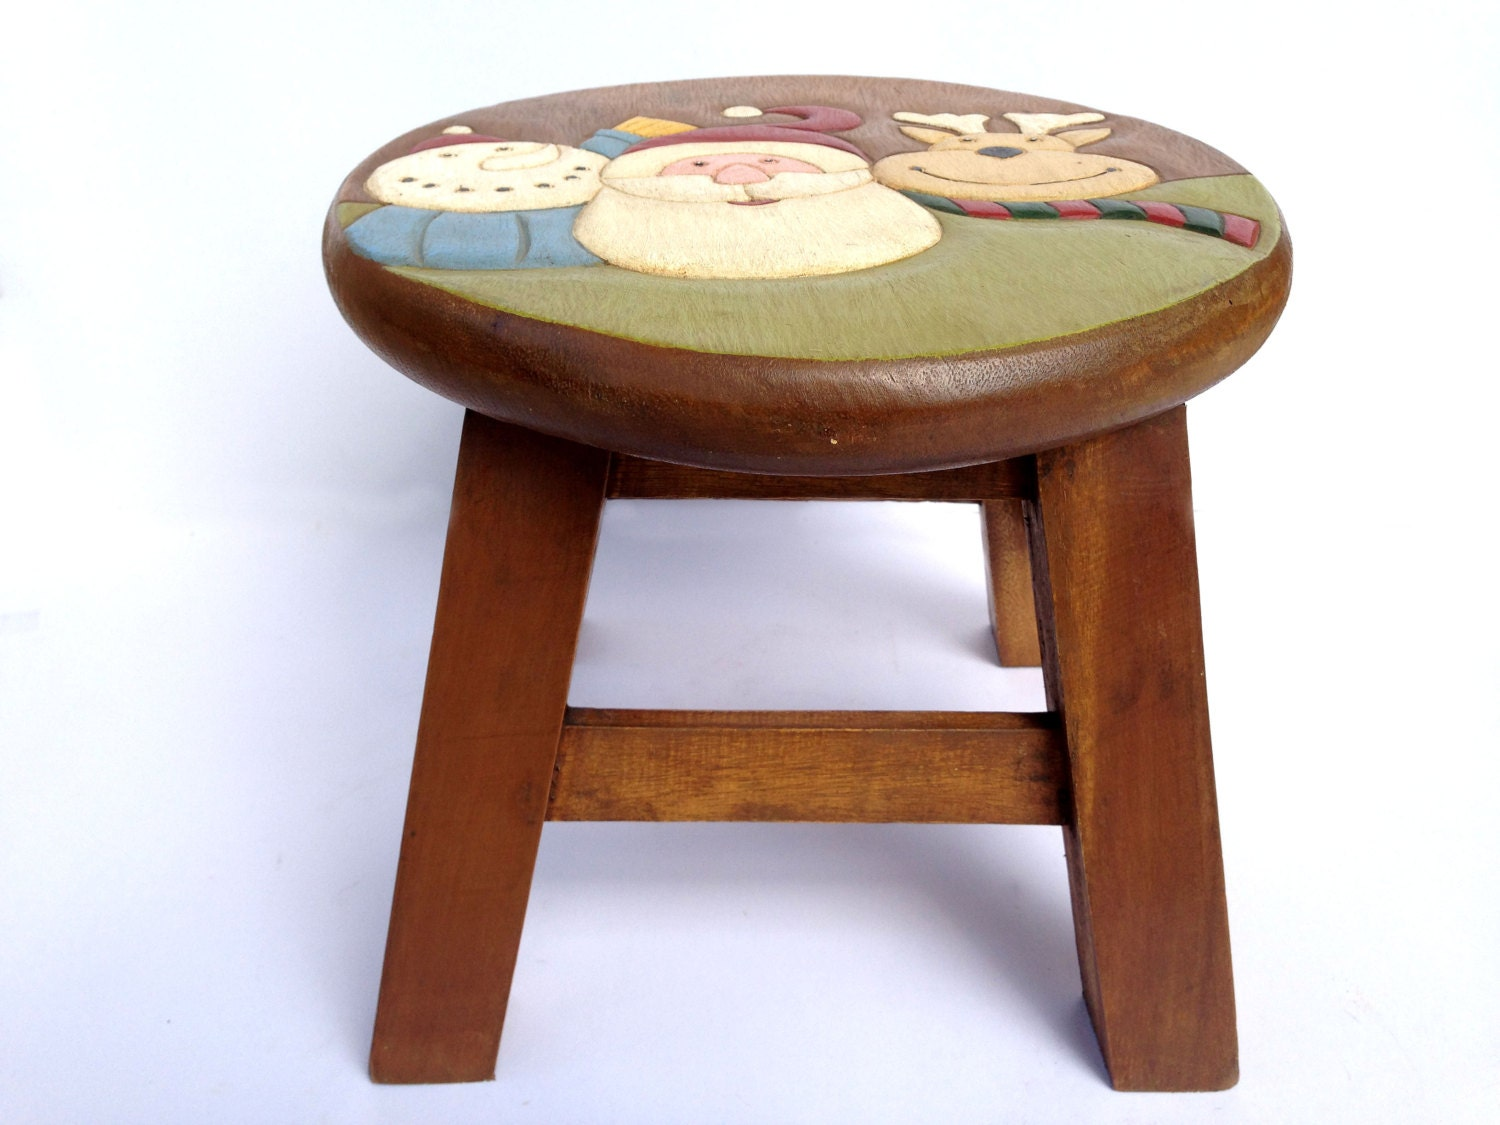 Santa Stool Kids Stool Sitting Stool Hand Painted Wooden Stool